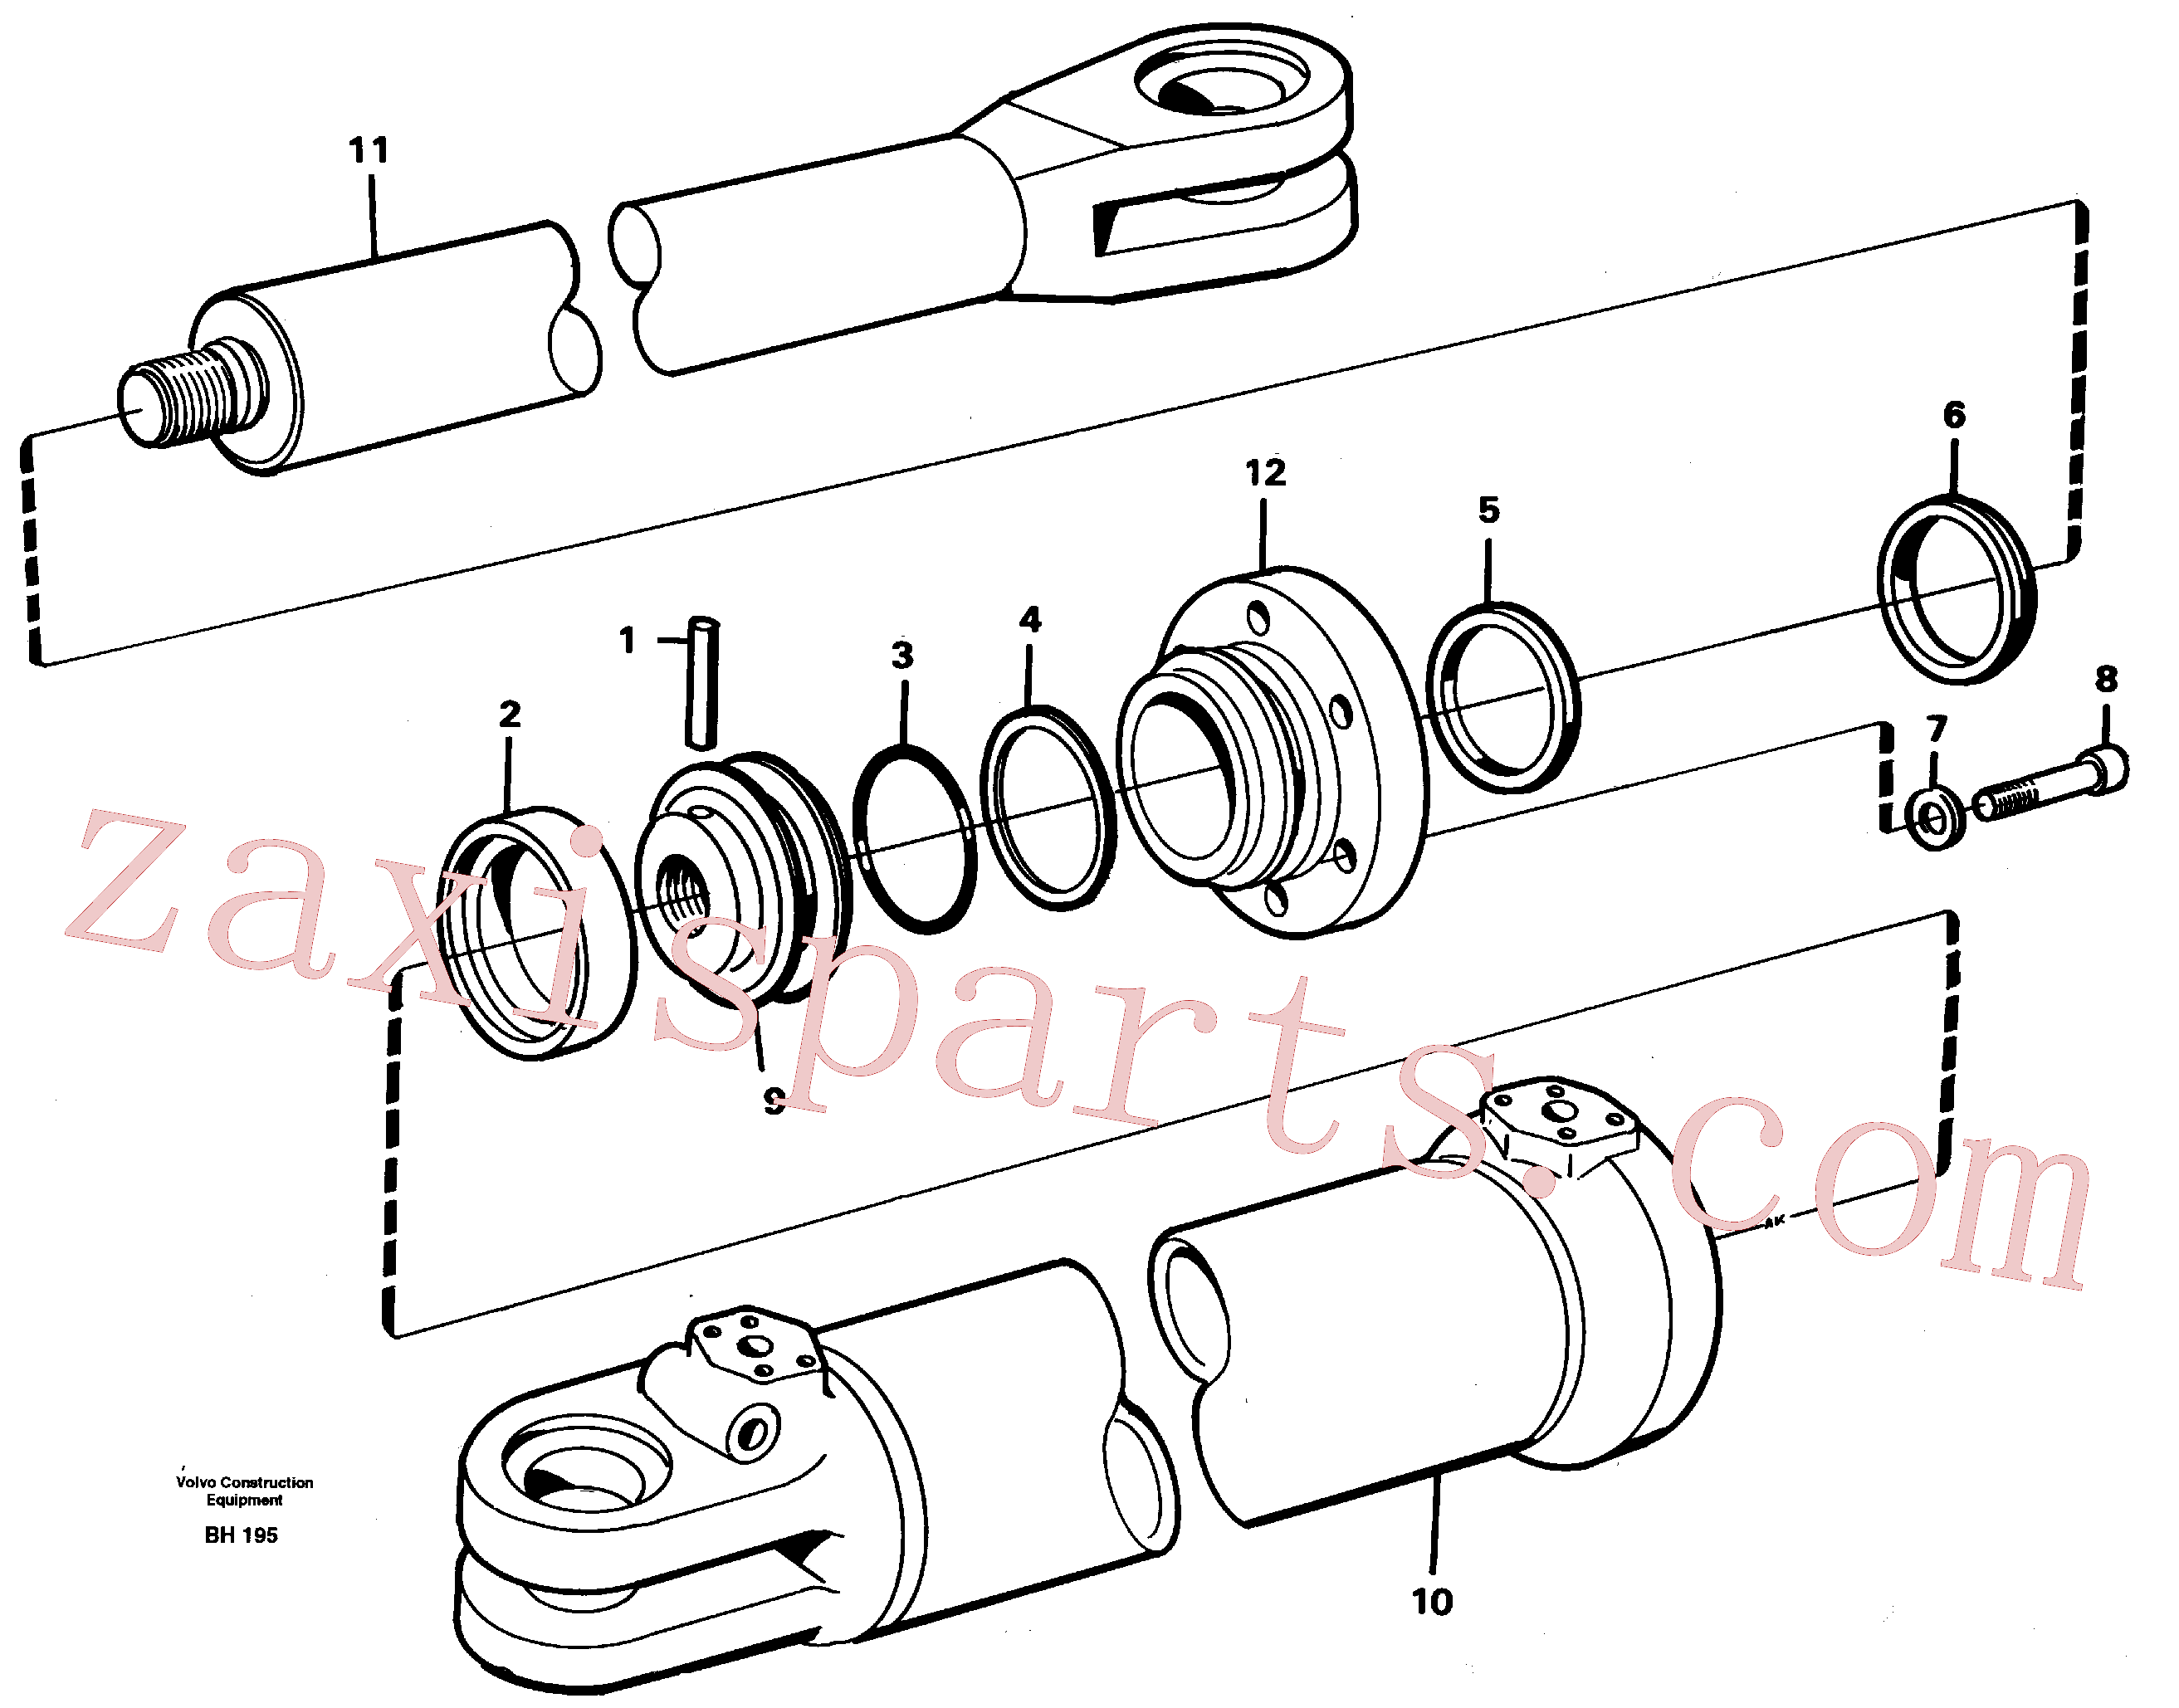 VOE4833025 for Volvo Steering cylinder(BH195 assembly)